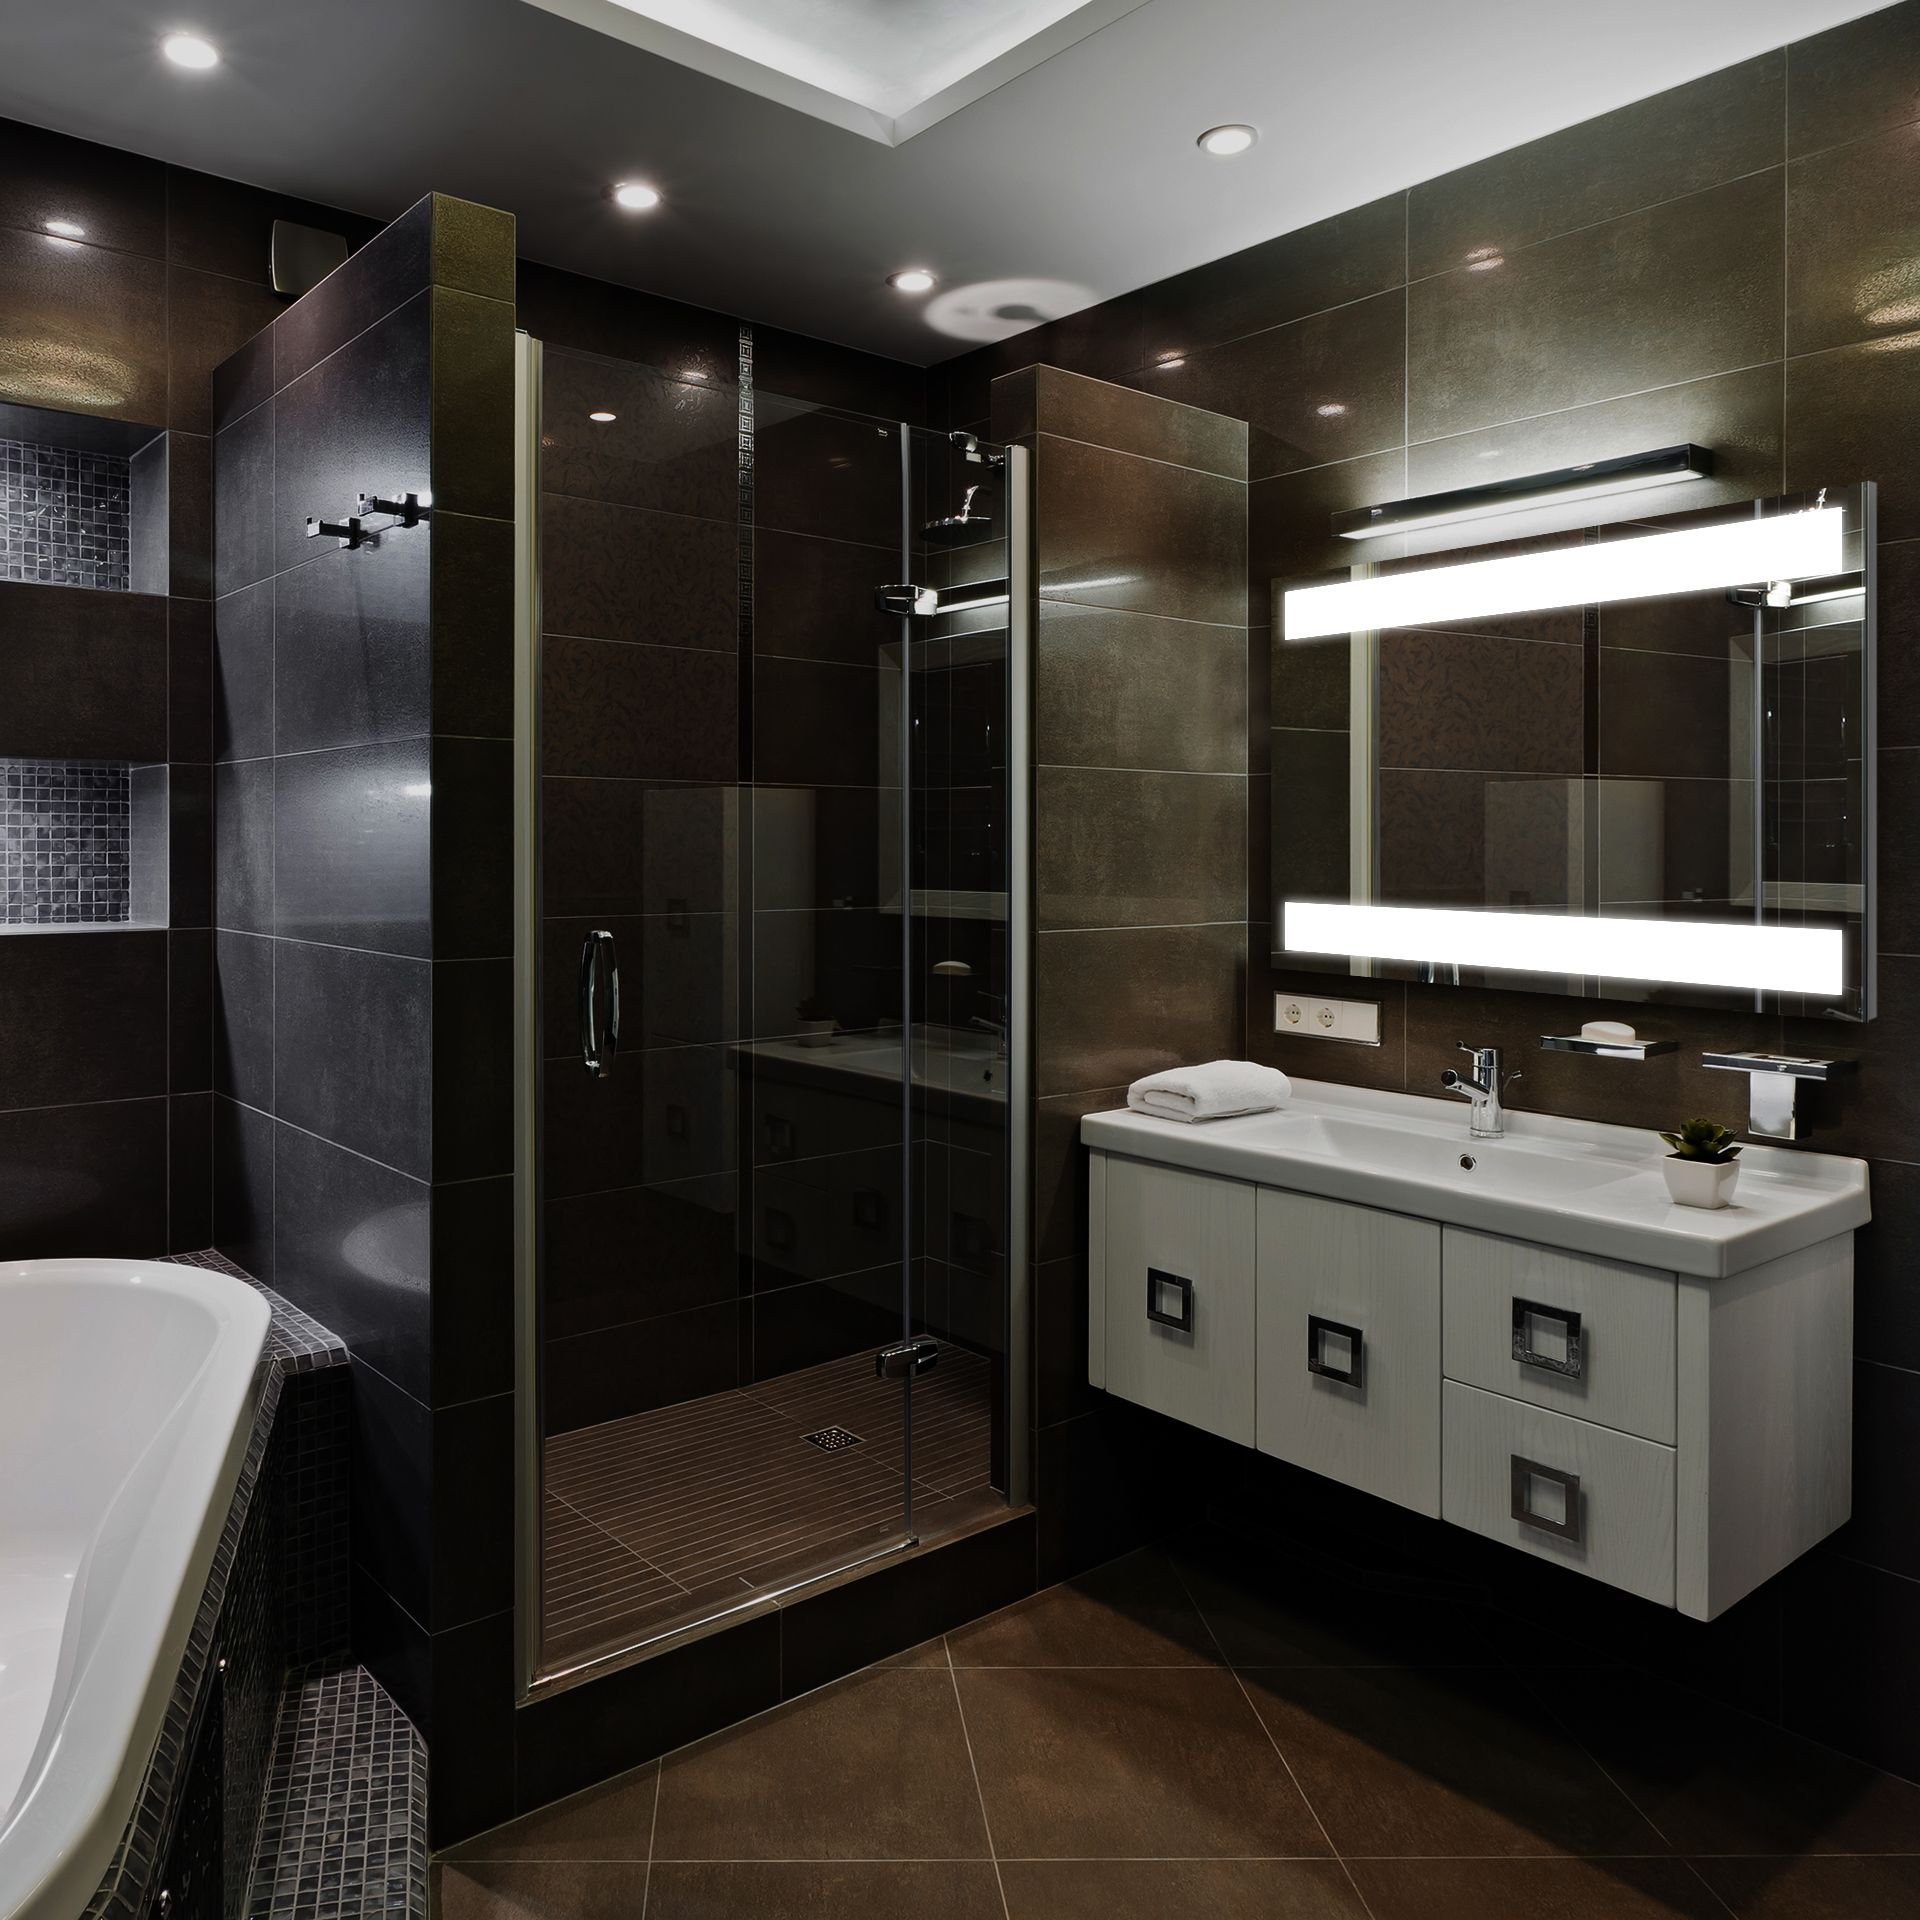 Moderno LED Lighted Mirror for Bathroom.